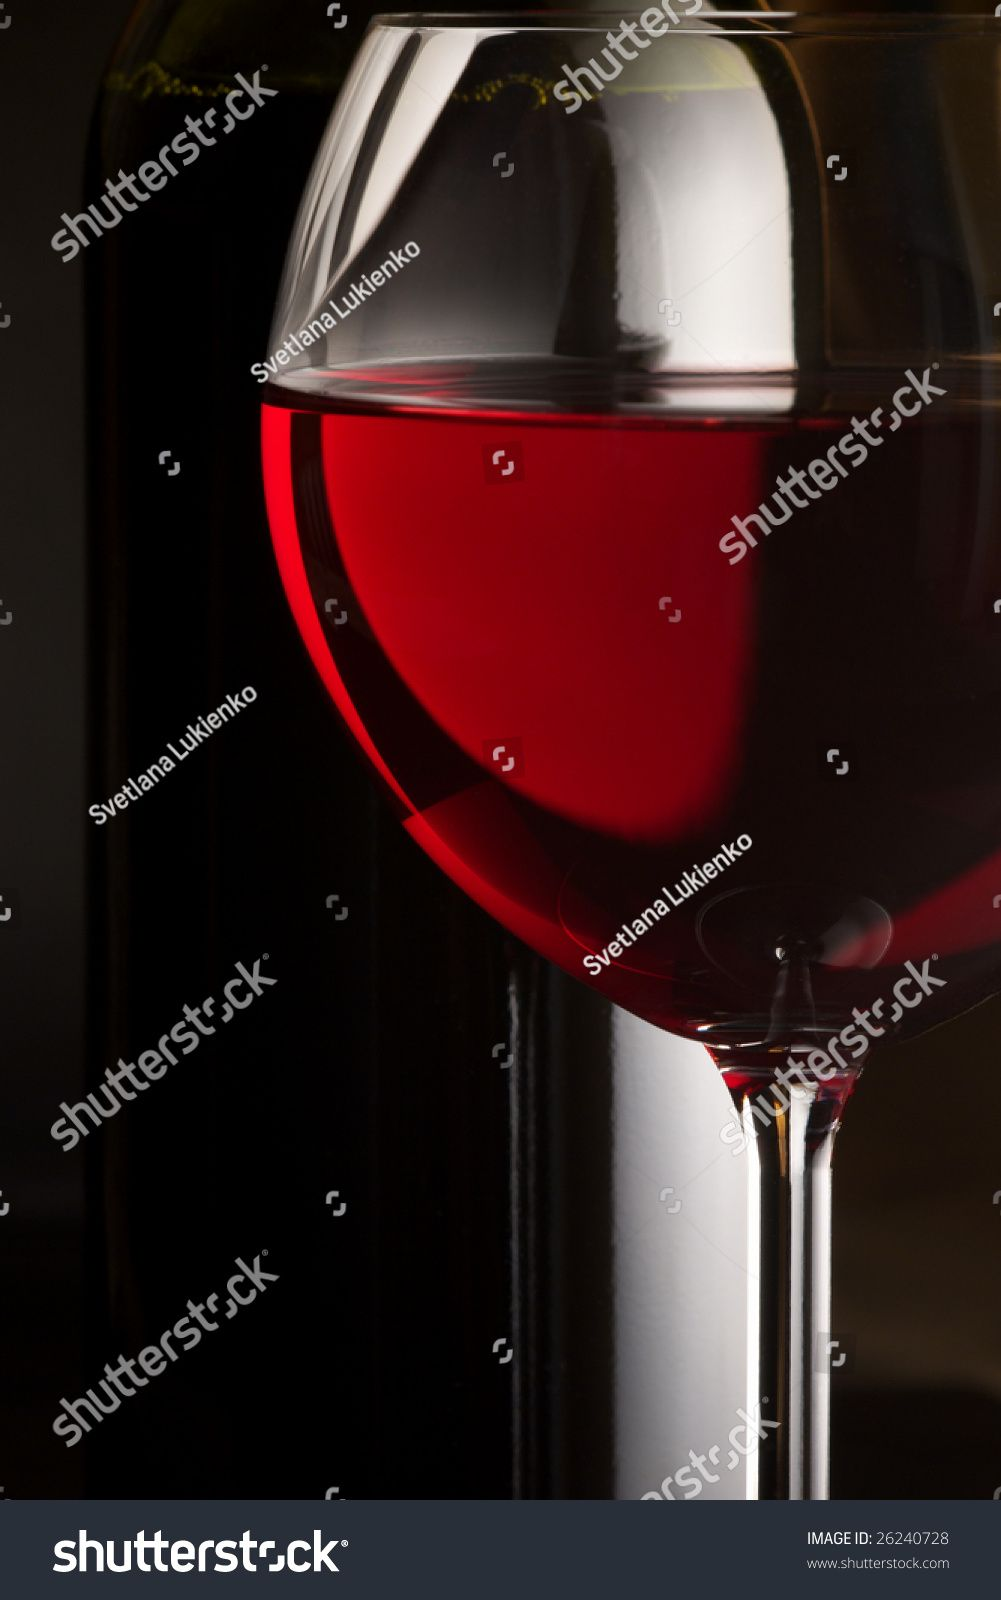 Glass Of Red Wine And Bottle On Black Background Ad Ad Wine Red Glass Background In 2020 Red Wine Bottle Red Wine Glass